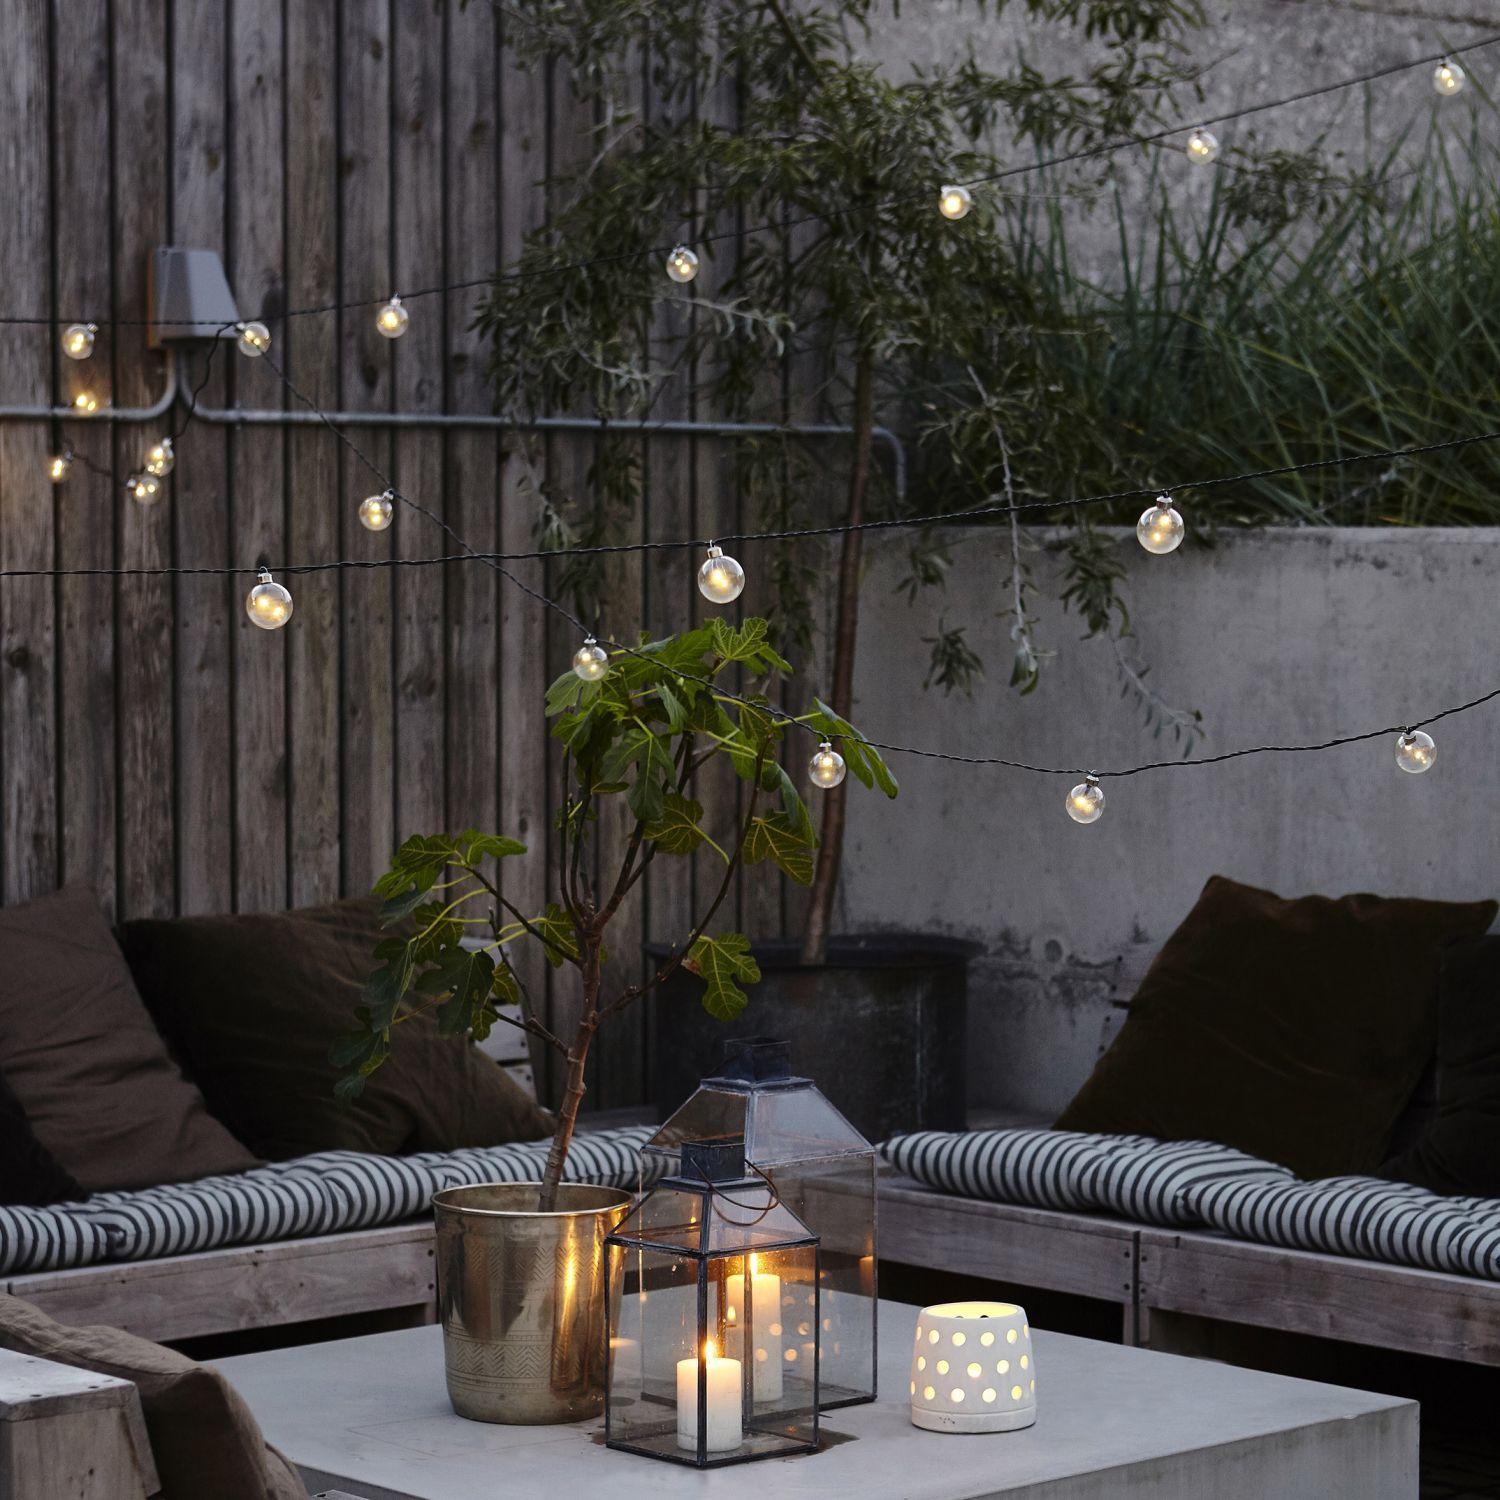 Stylish Festoon Lights From Danish Company House Doctor Add These